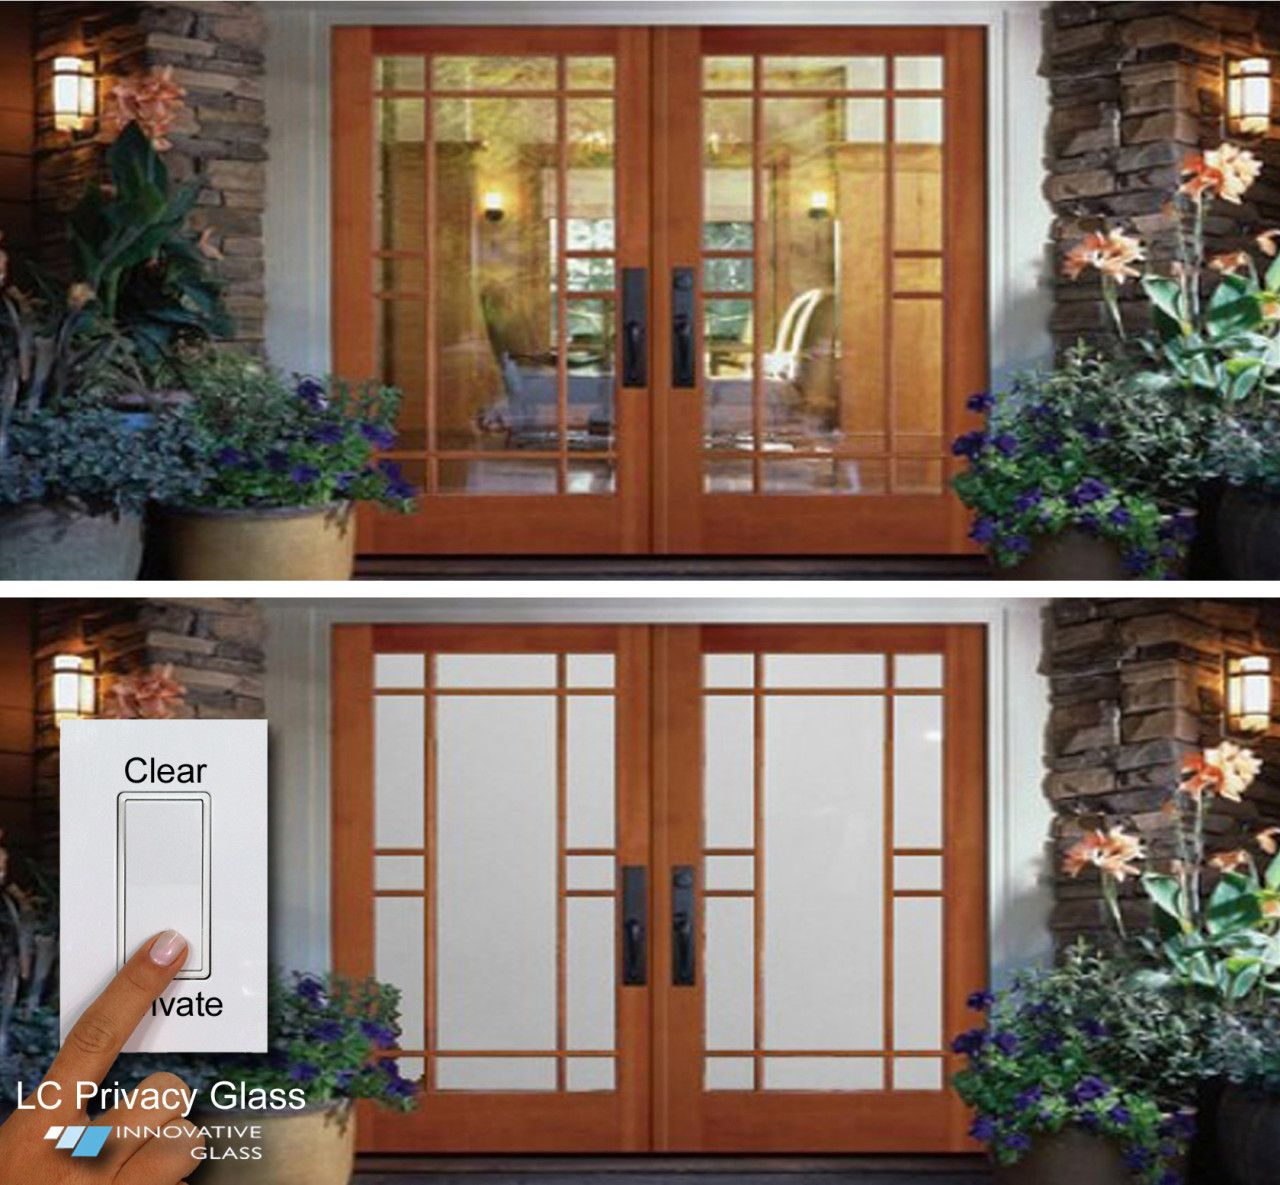 Switchable Privacy For Glass Front Doors Smart Home Solutions Eglass By Innovative Glass Glass Front Door Privacy Contemporary Front Doors Glass Front Door